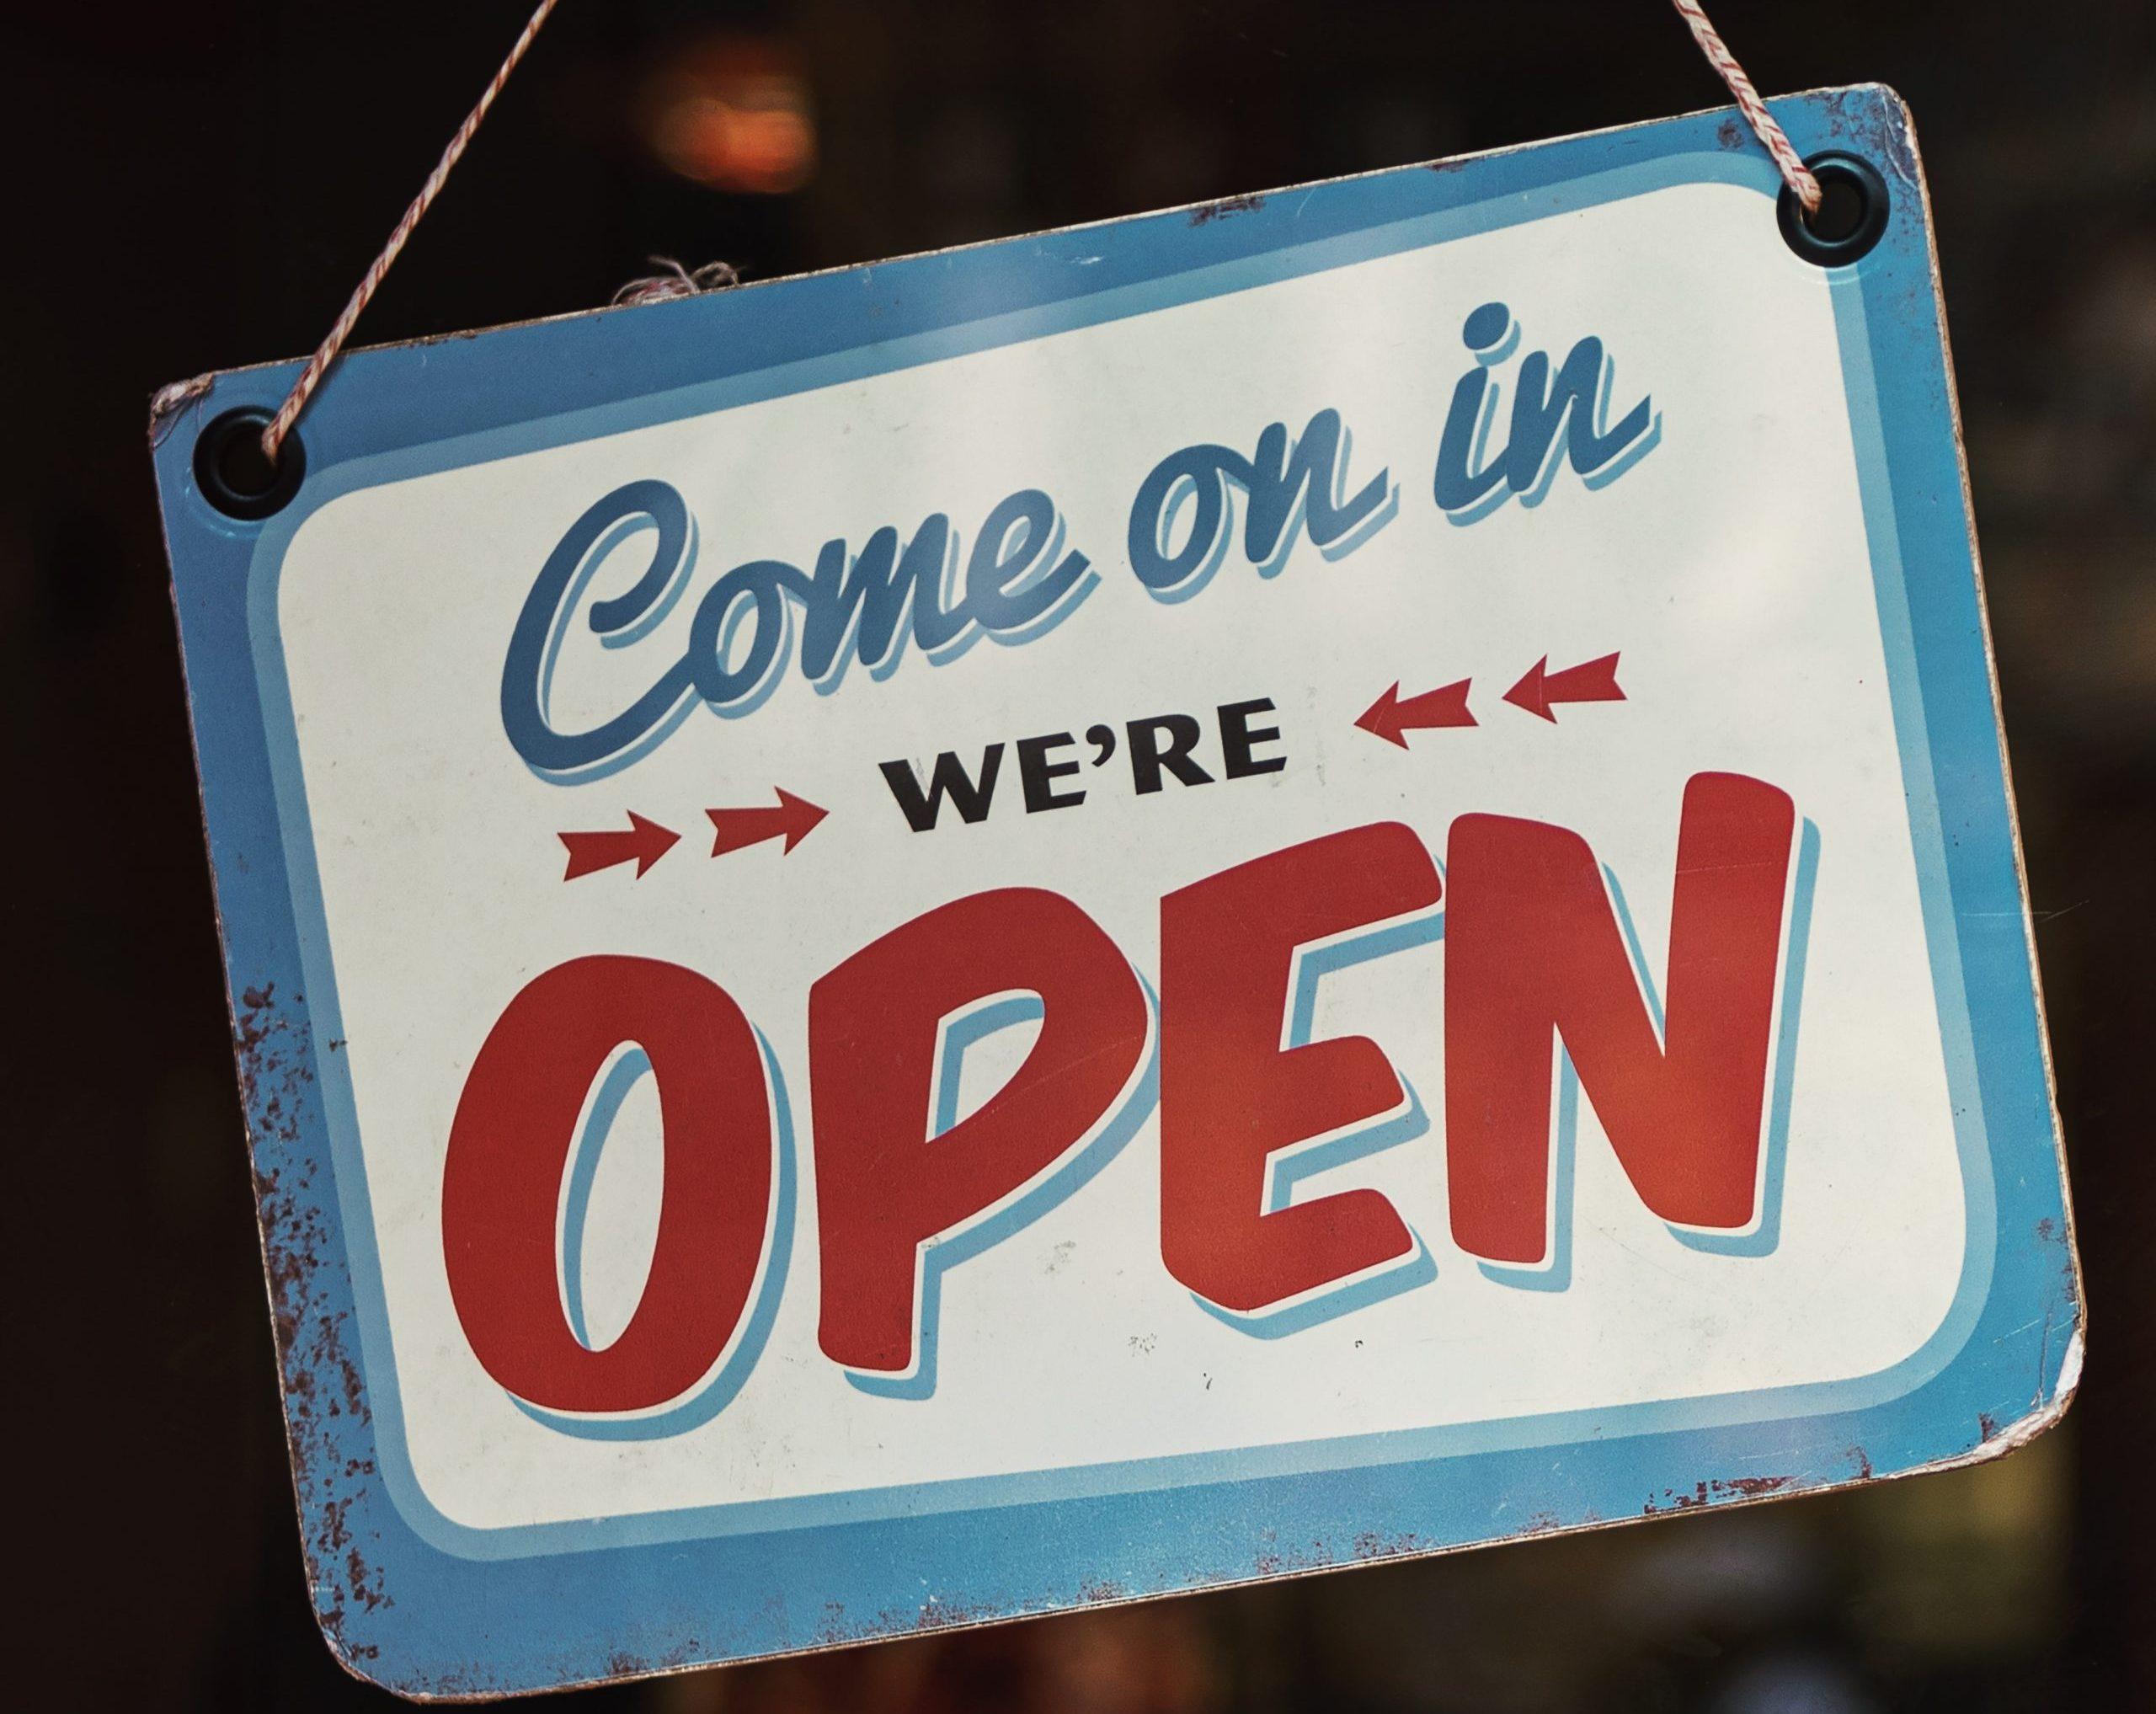 We're Open !